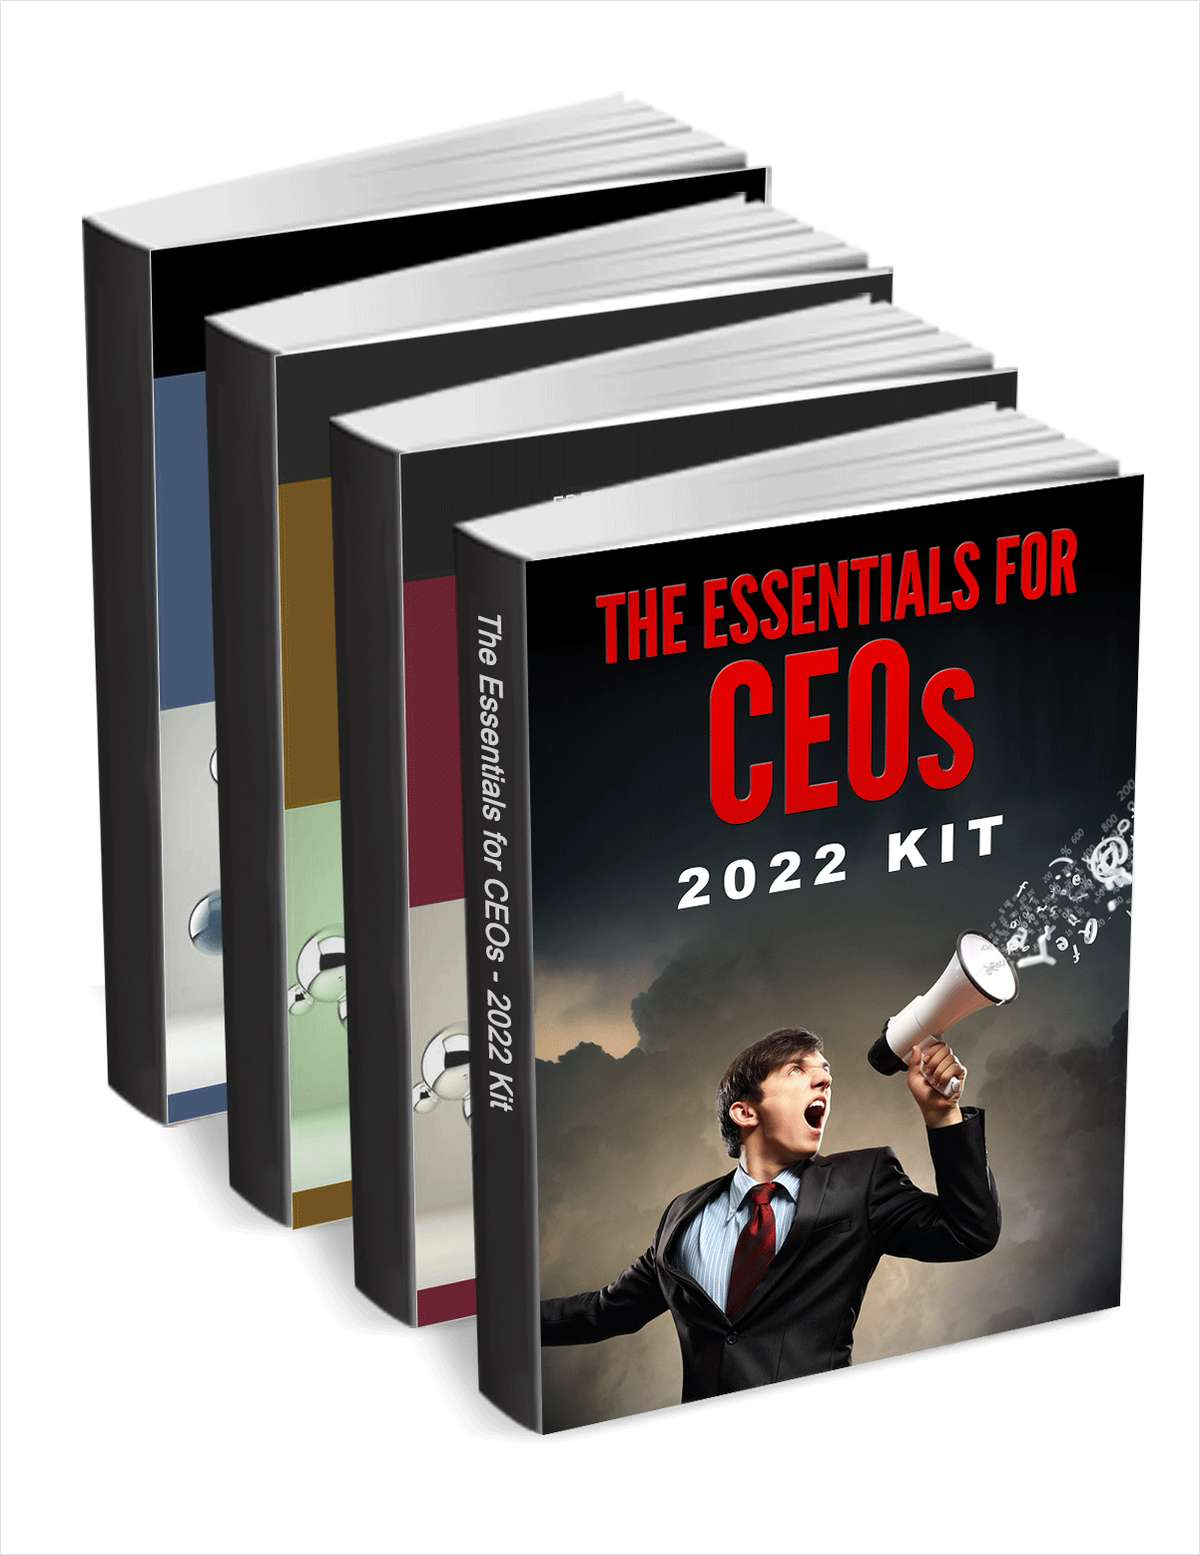 Trending Now: This Month's Top CEO Resources